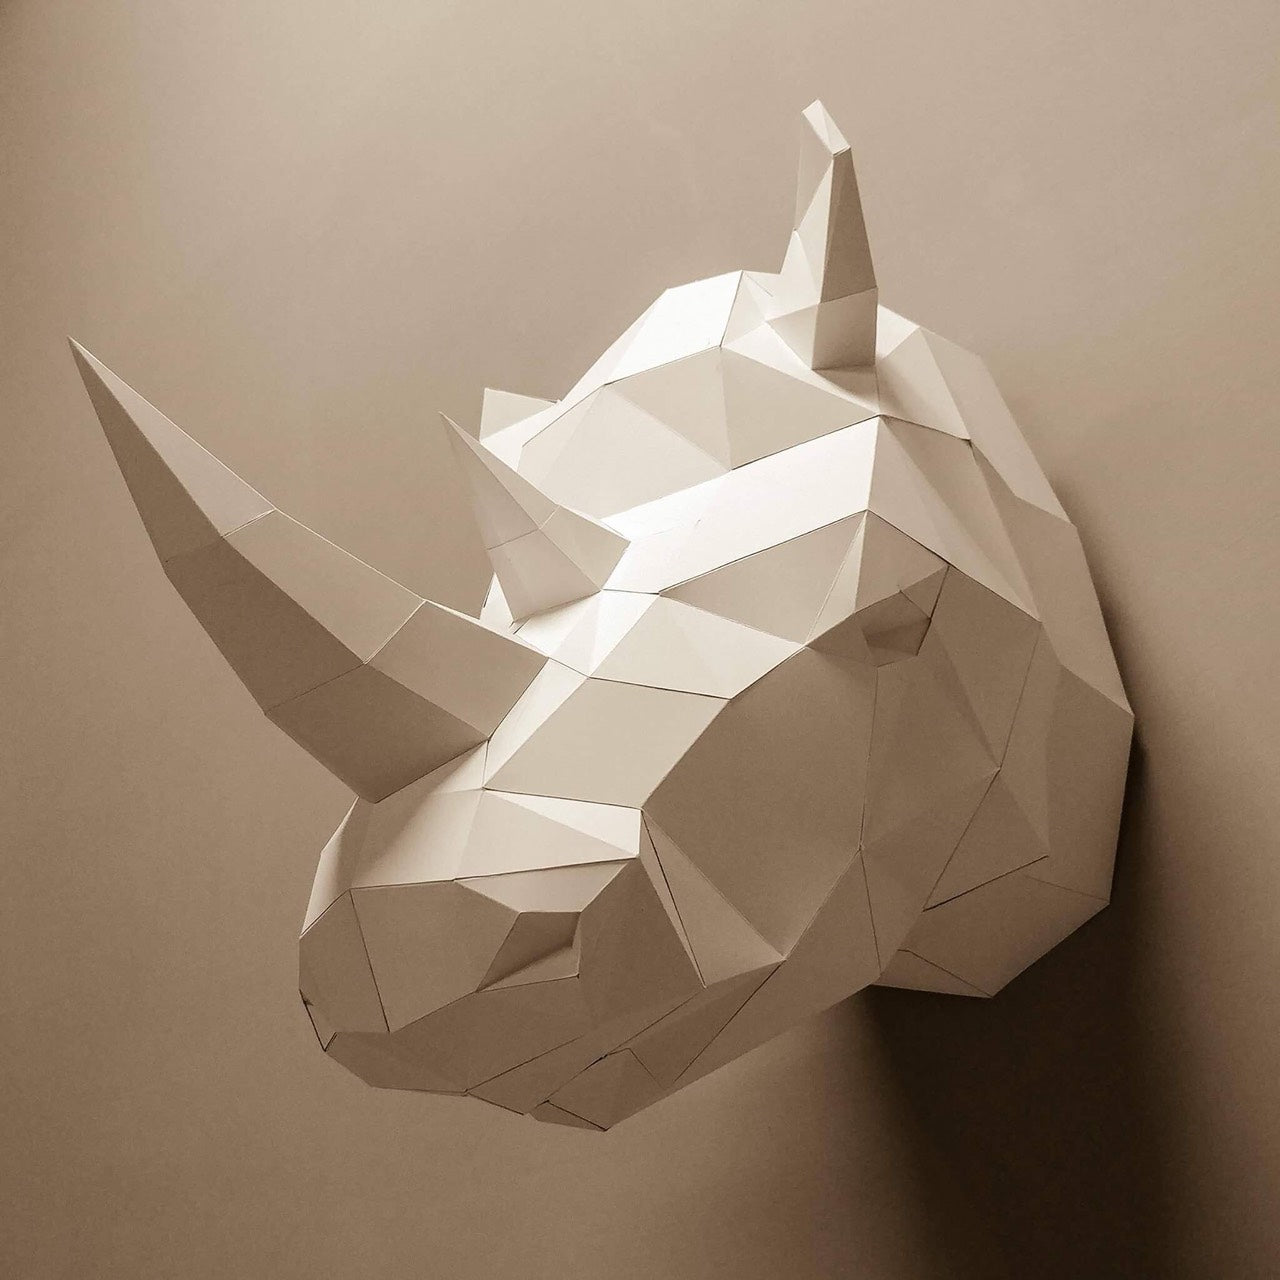 Home - Wall Decor (Rhino)